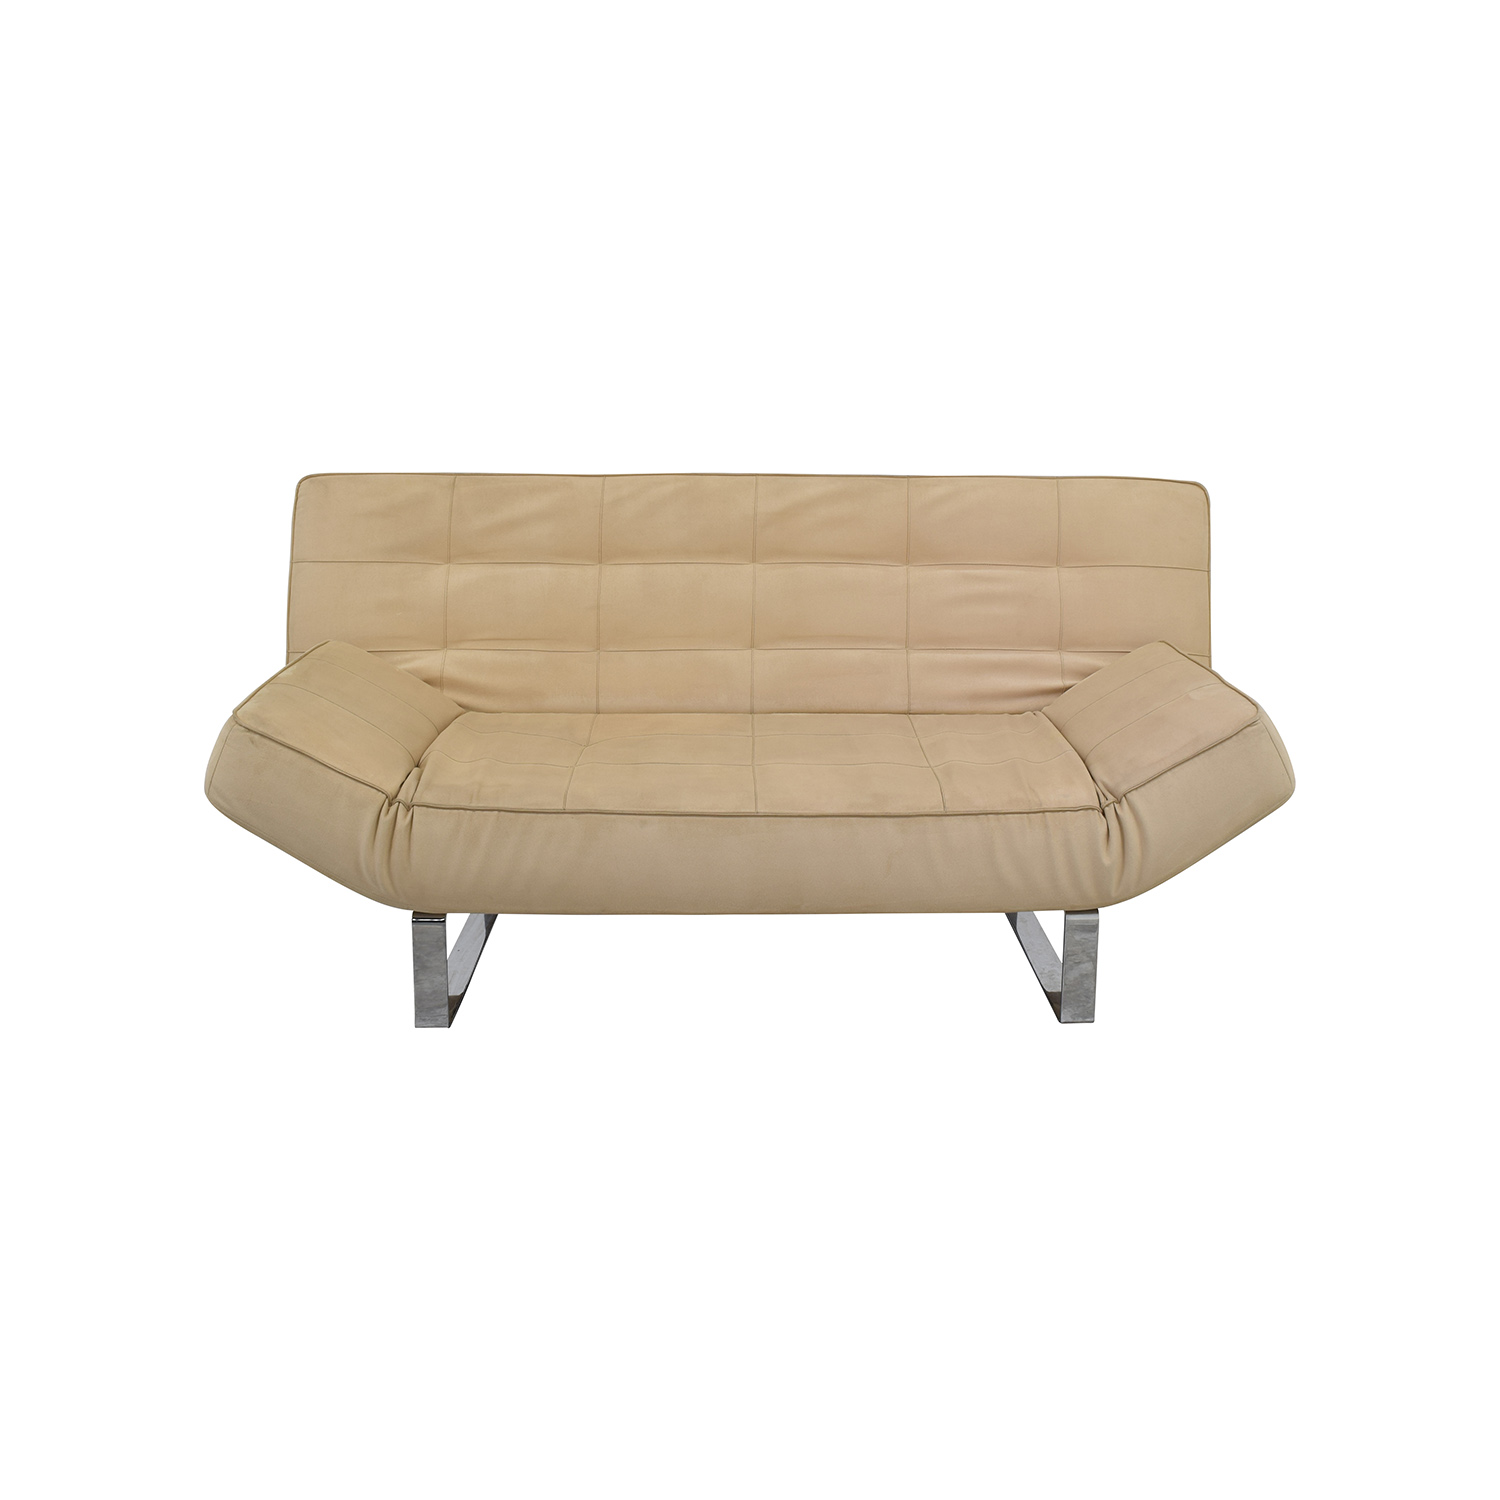 Two seater sofa buy Boconcept sofa price